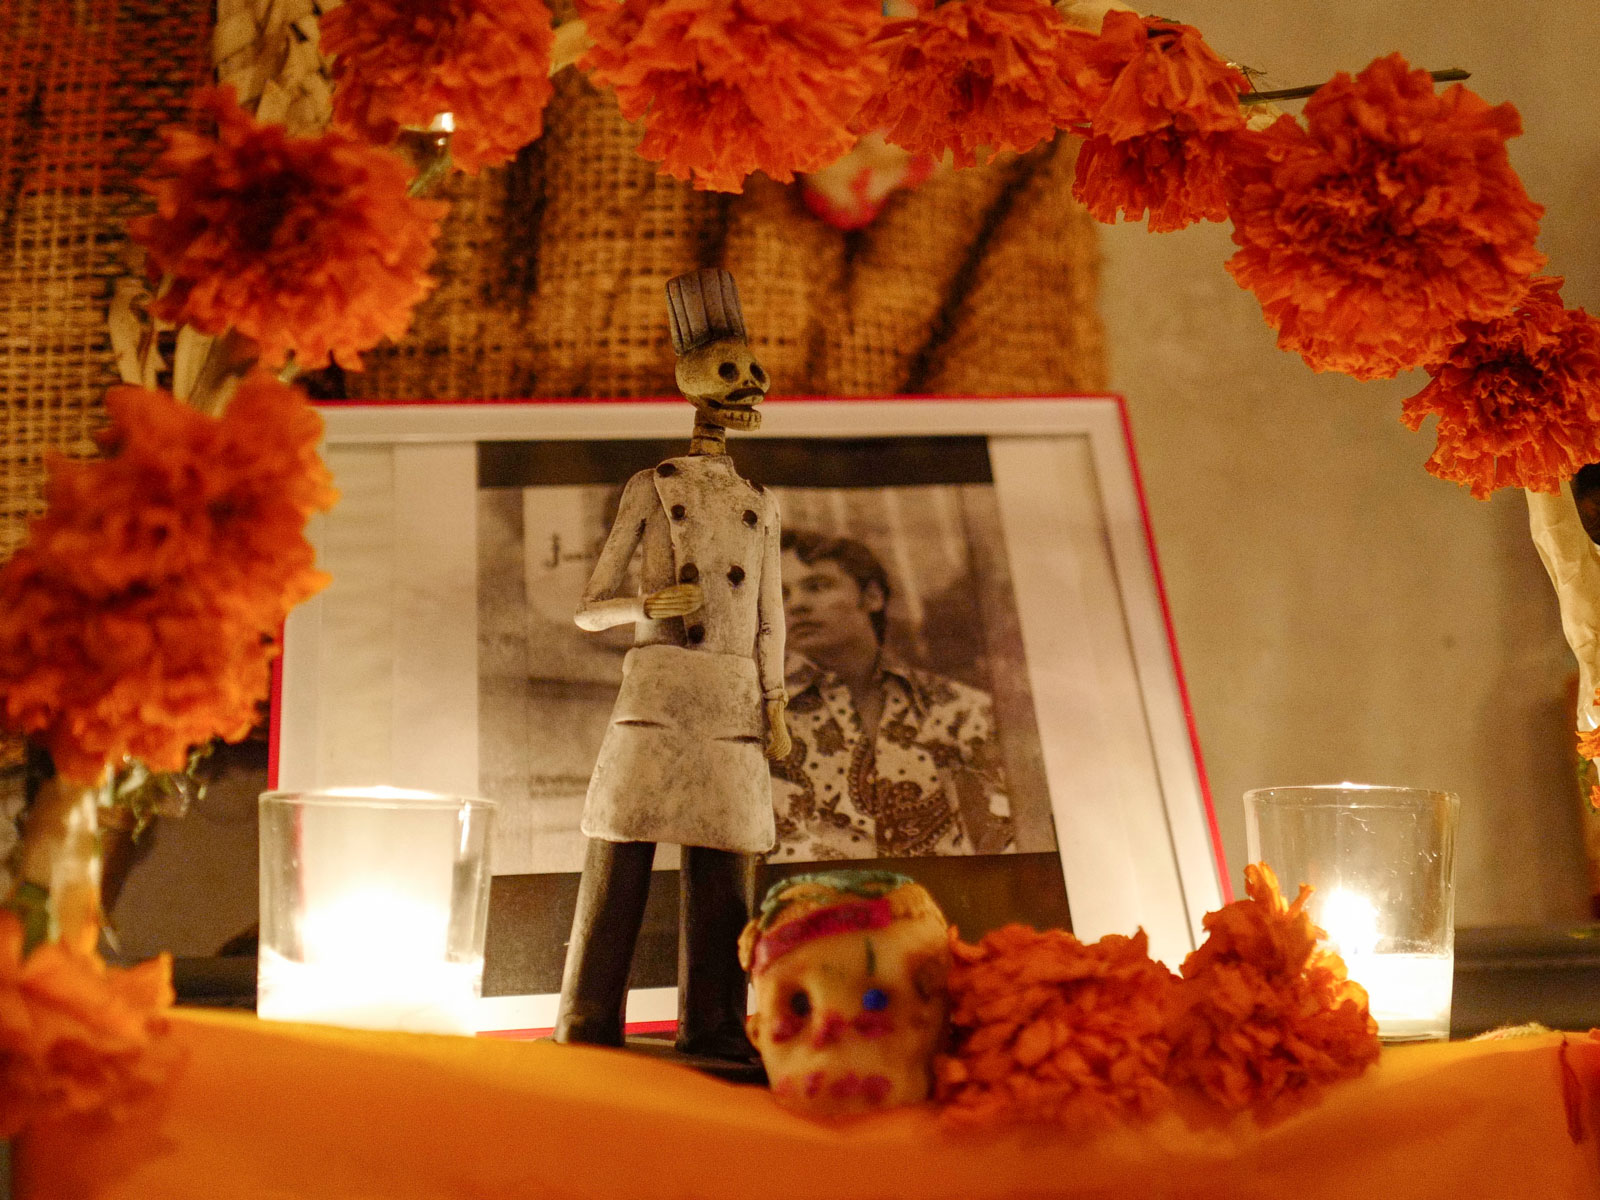 Chef to Celebrate Anthony Bourdain with Barbacoa-Topped Dia de Los Muertos Altar